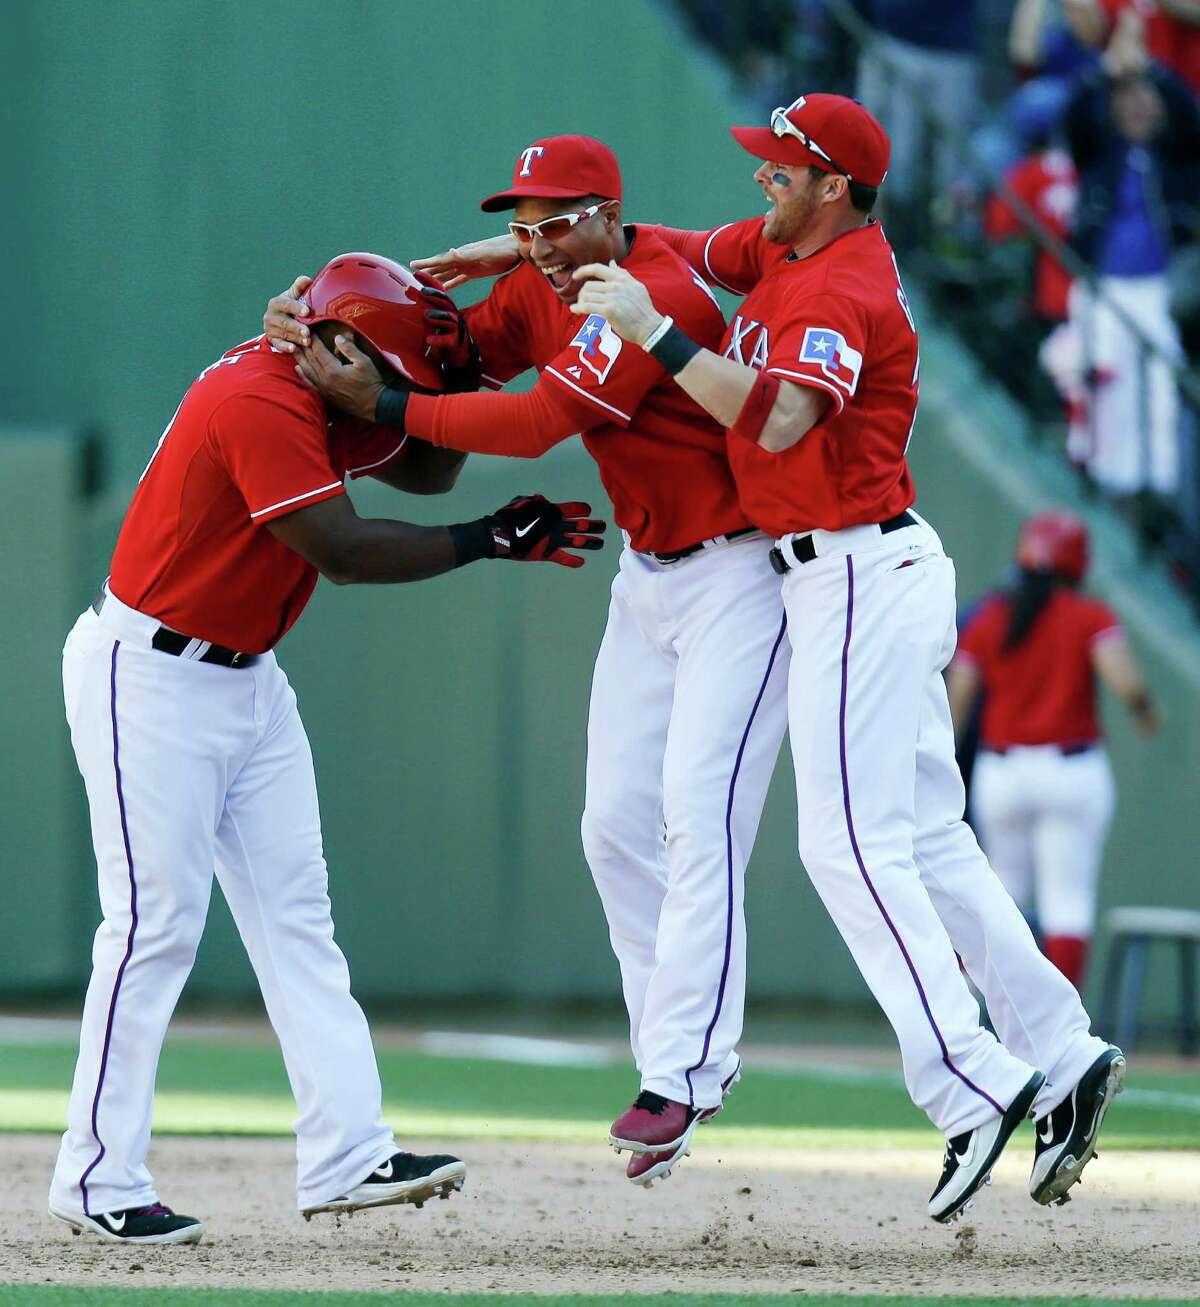 Texas Rangers' Adrian Beltre, left, is grabbed by Leonys Martin, center, and Craig Gentry after Beltre hit the winning RBI single to score Elvis Andrus in the ninth inning of a baseball game against the Boston Red Sox, Sunday, May 5, 2013, in Arlington, Texas. The Rangers won 4-3. (AP Photo/LM Otero)